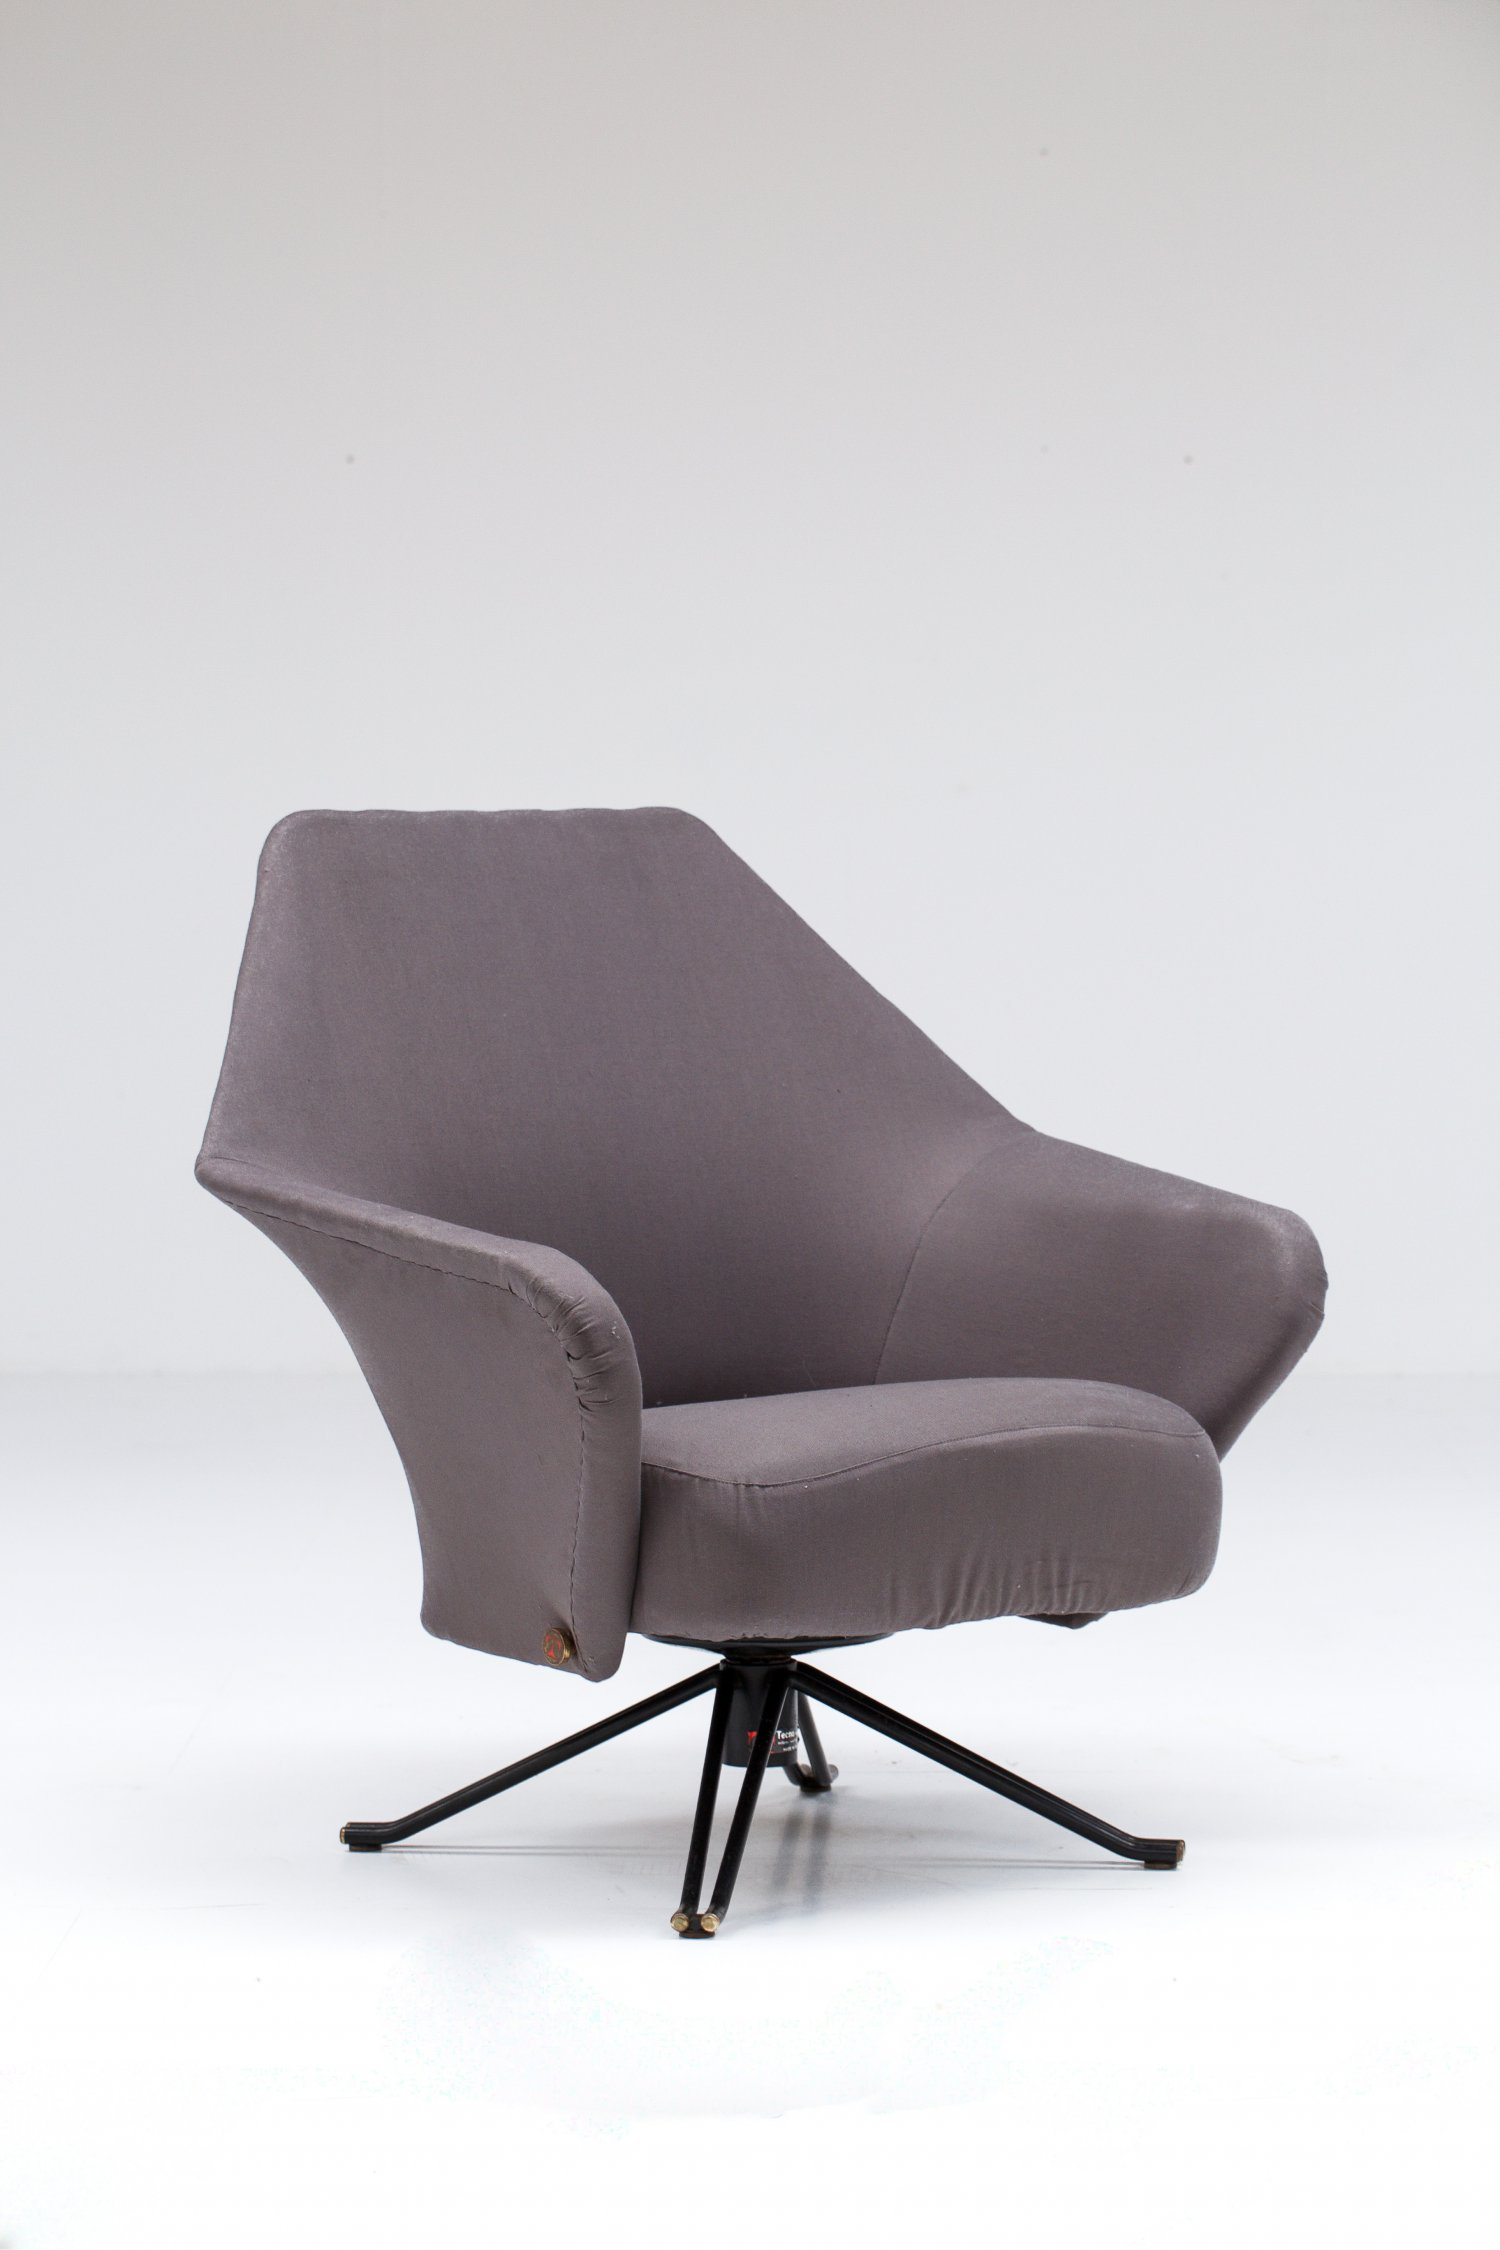 P32 lounge chair Osvaldo Borsani